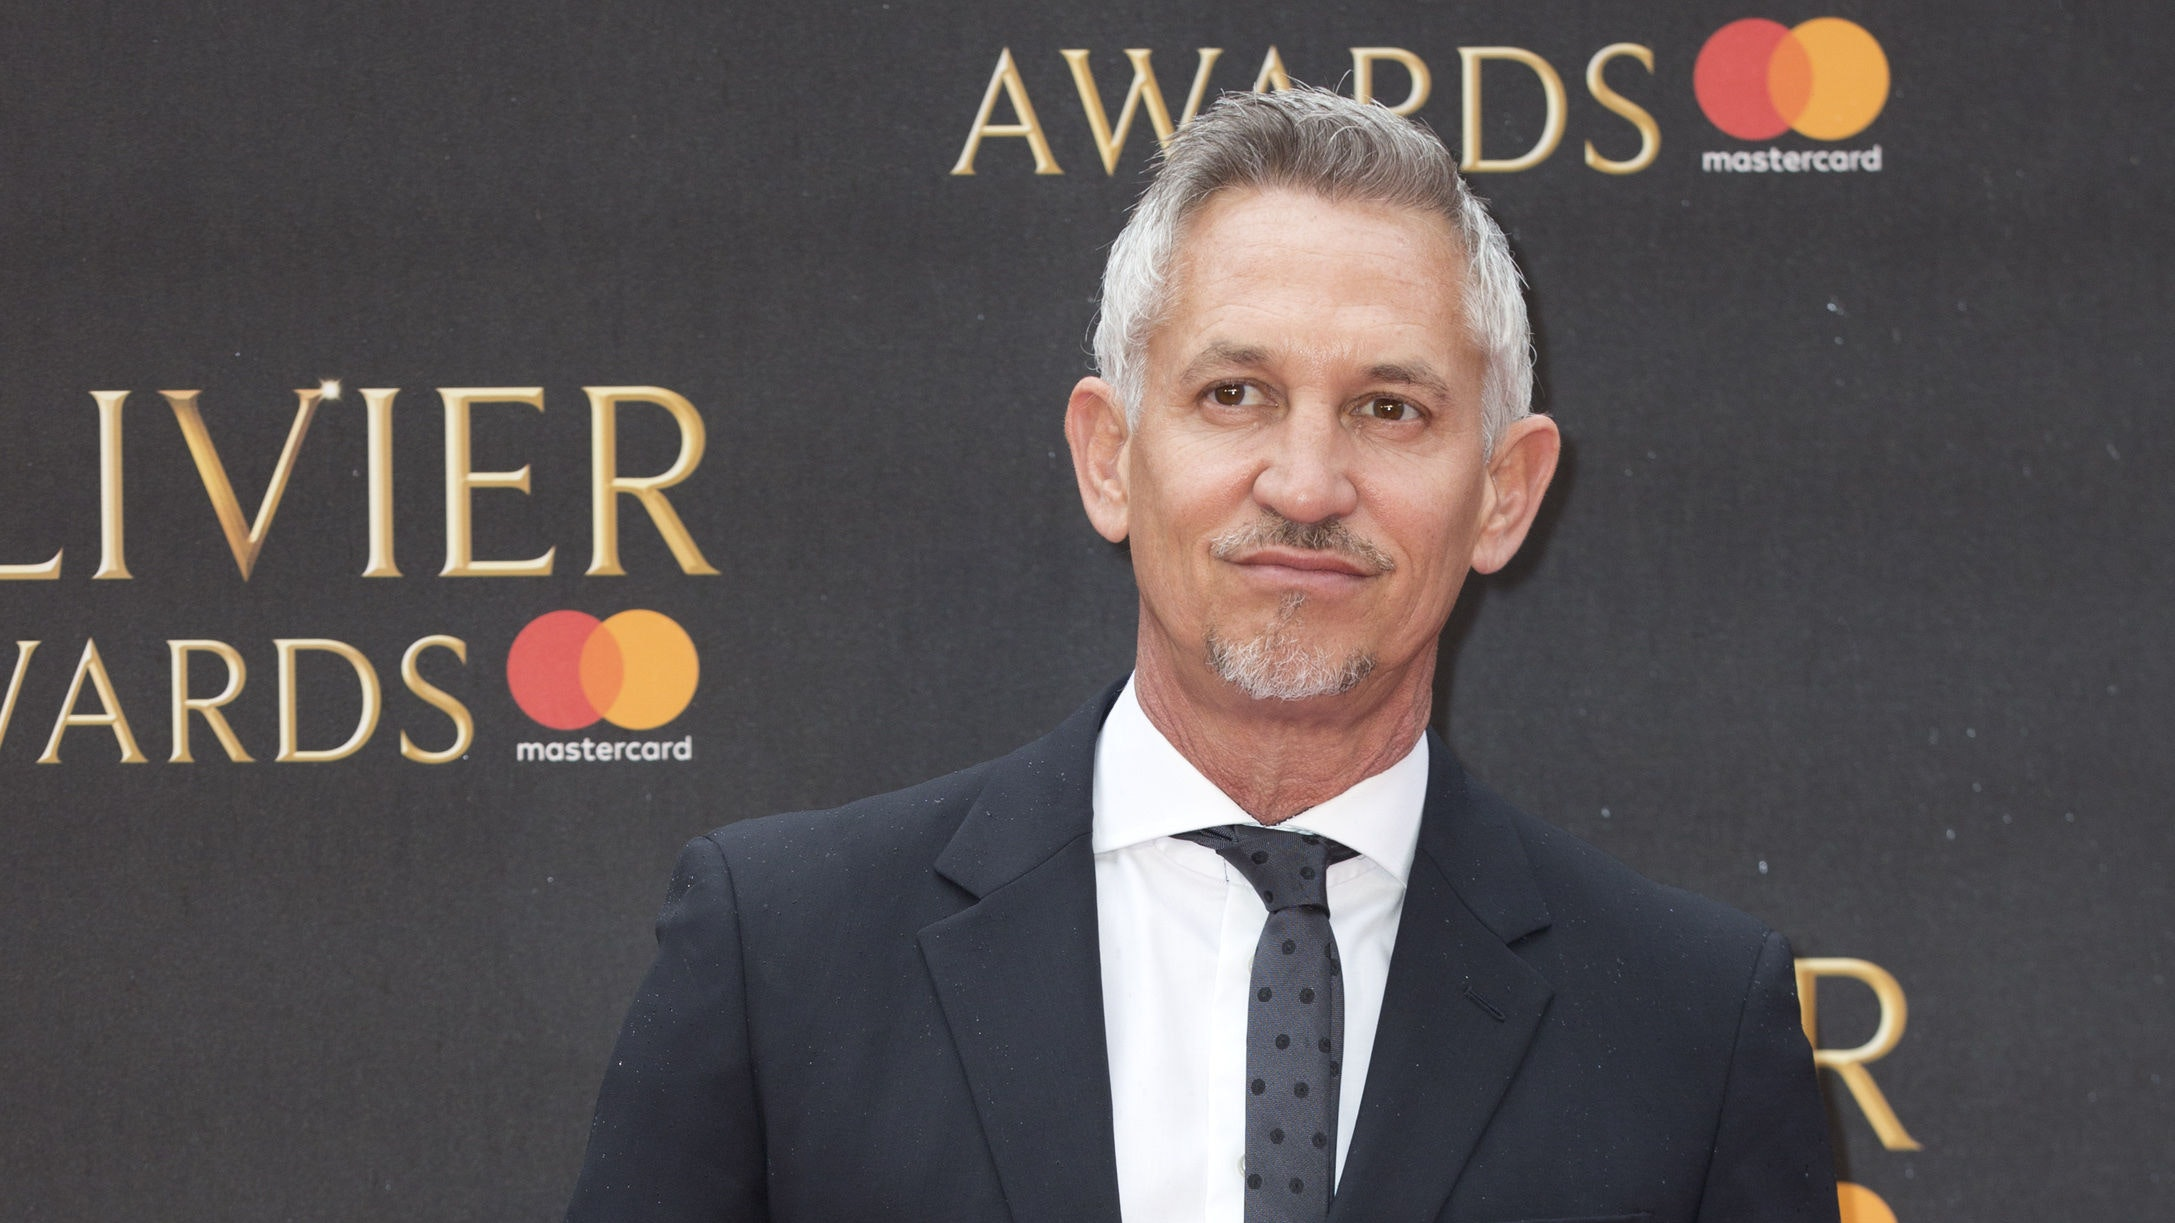 BBC pay: Gary Lineker tops list of highest earners